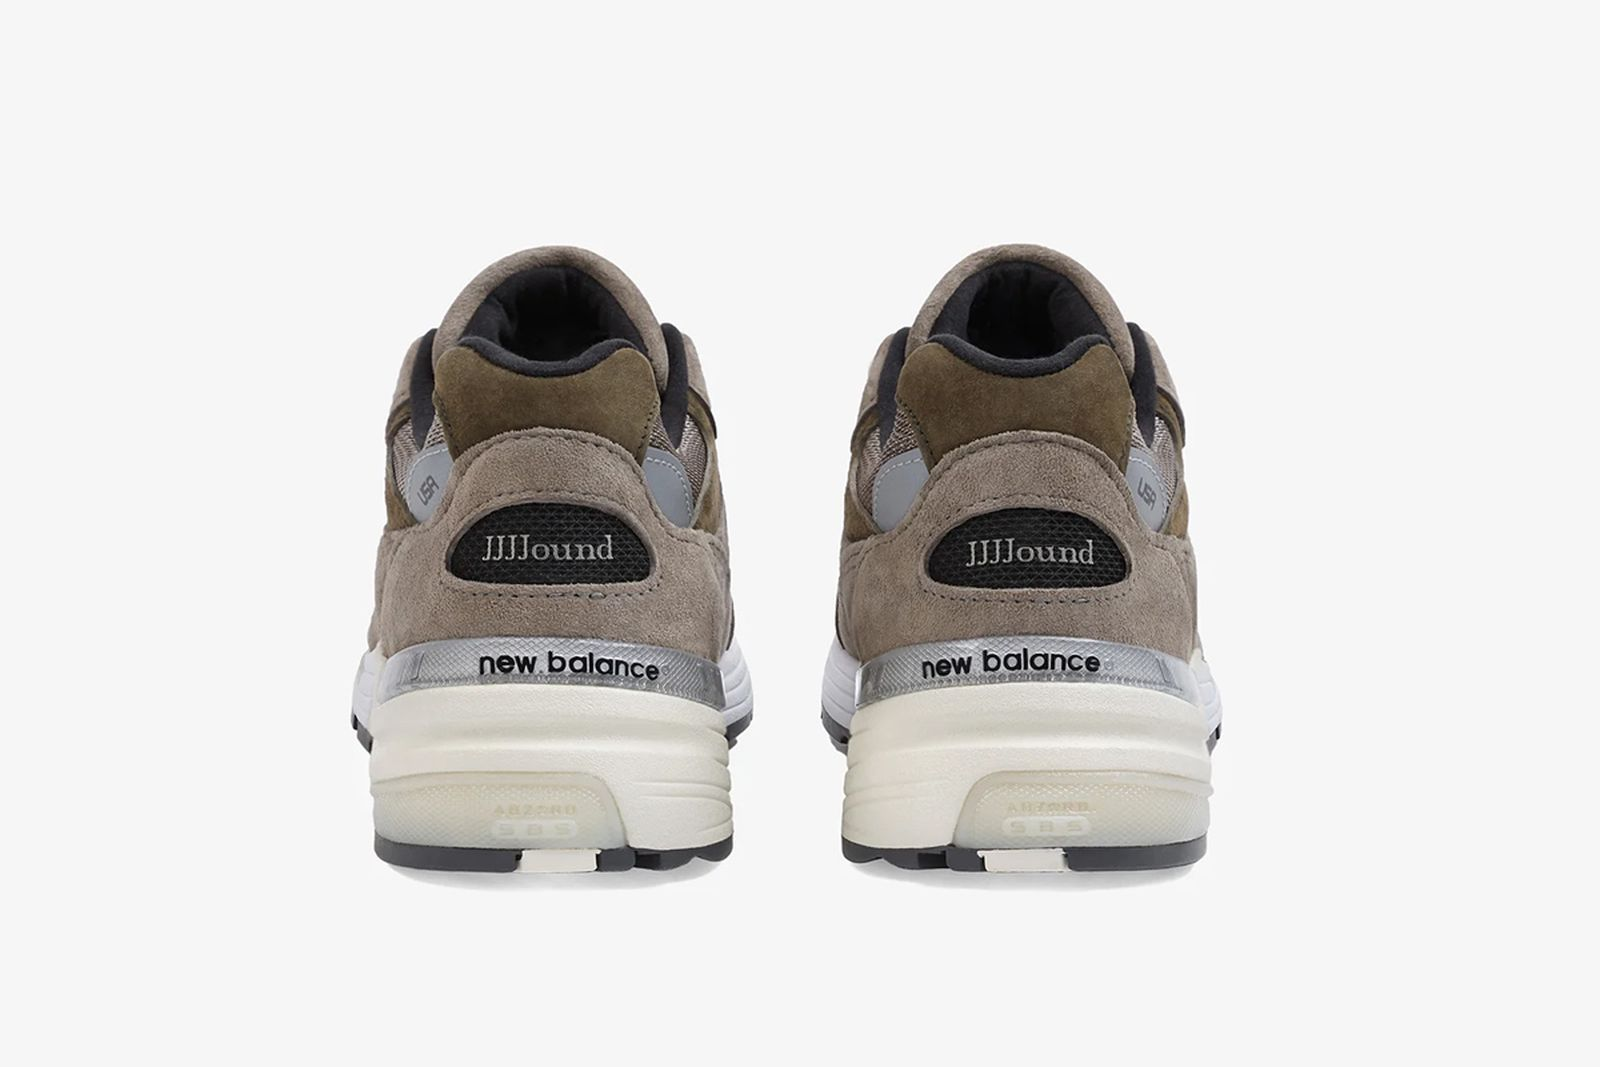 jjjjound-new-balance-992-release-date-price-01